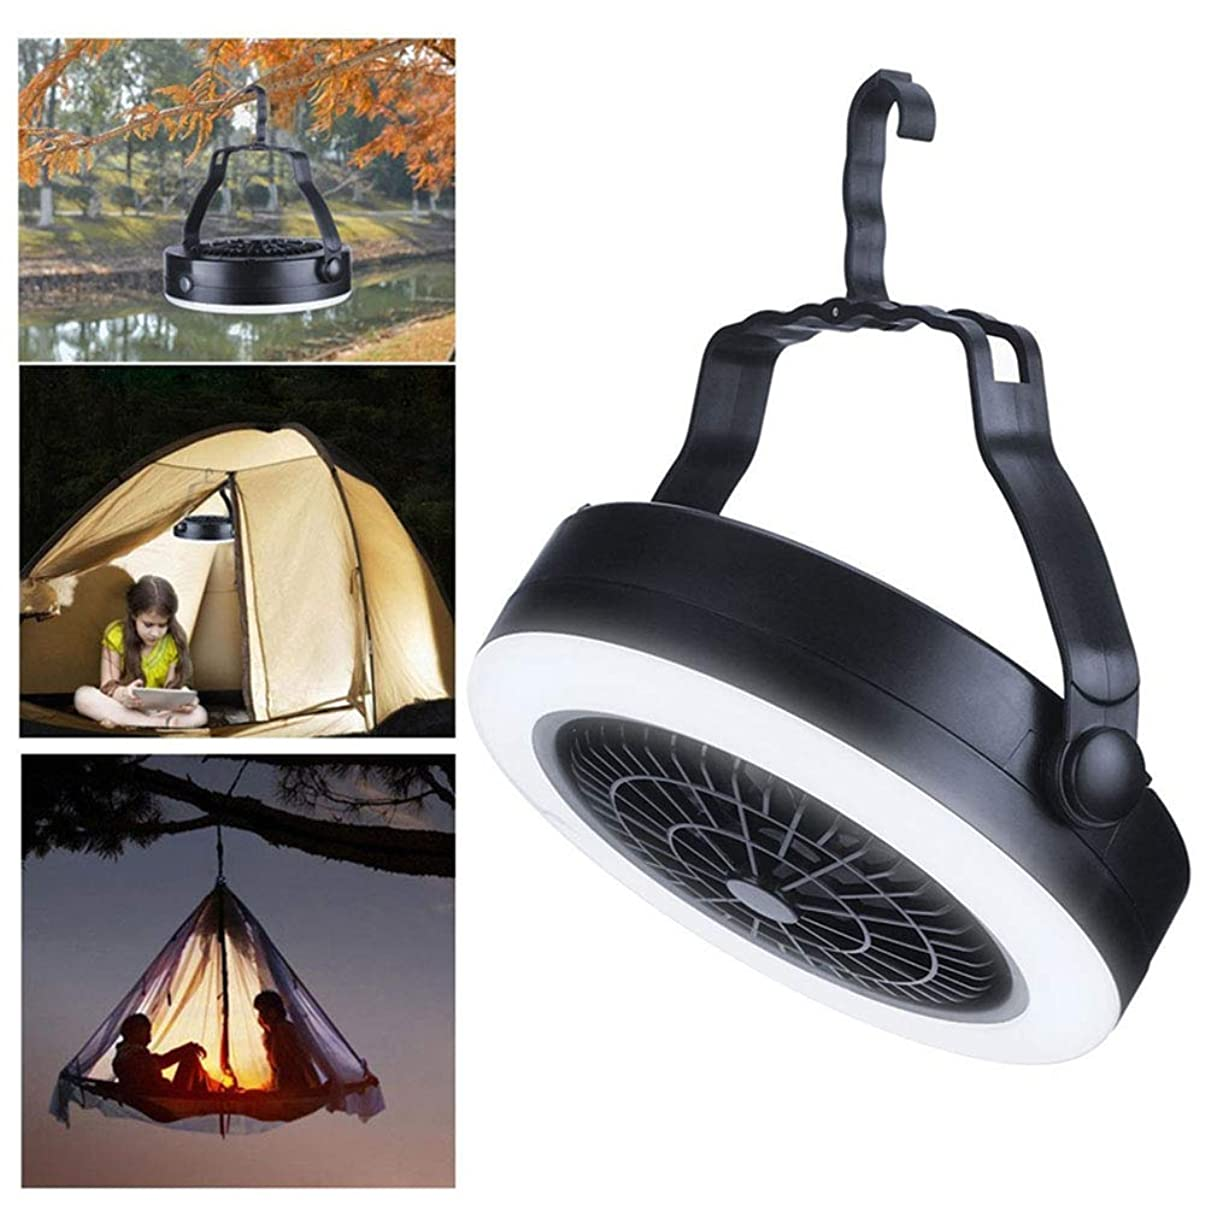 856store Fans Cooling Portable Fan Light USB Rechargeable Outdoor Camping Hanging Tent Lamp Lantern